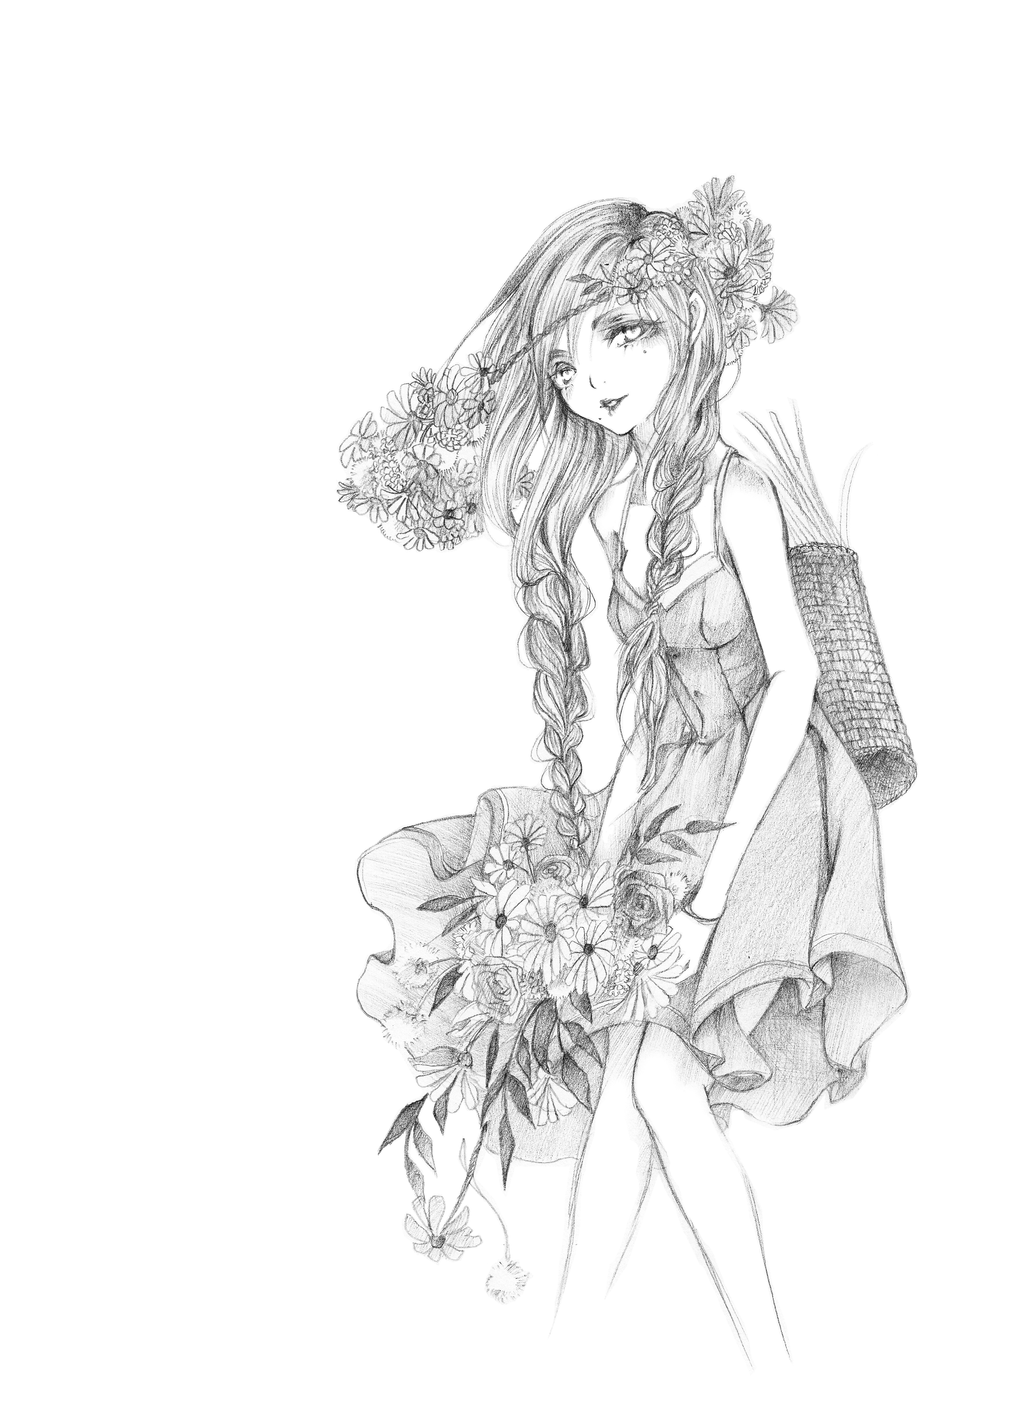 Flower Carrier by The Crowned on DeviantArt